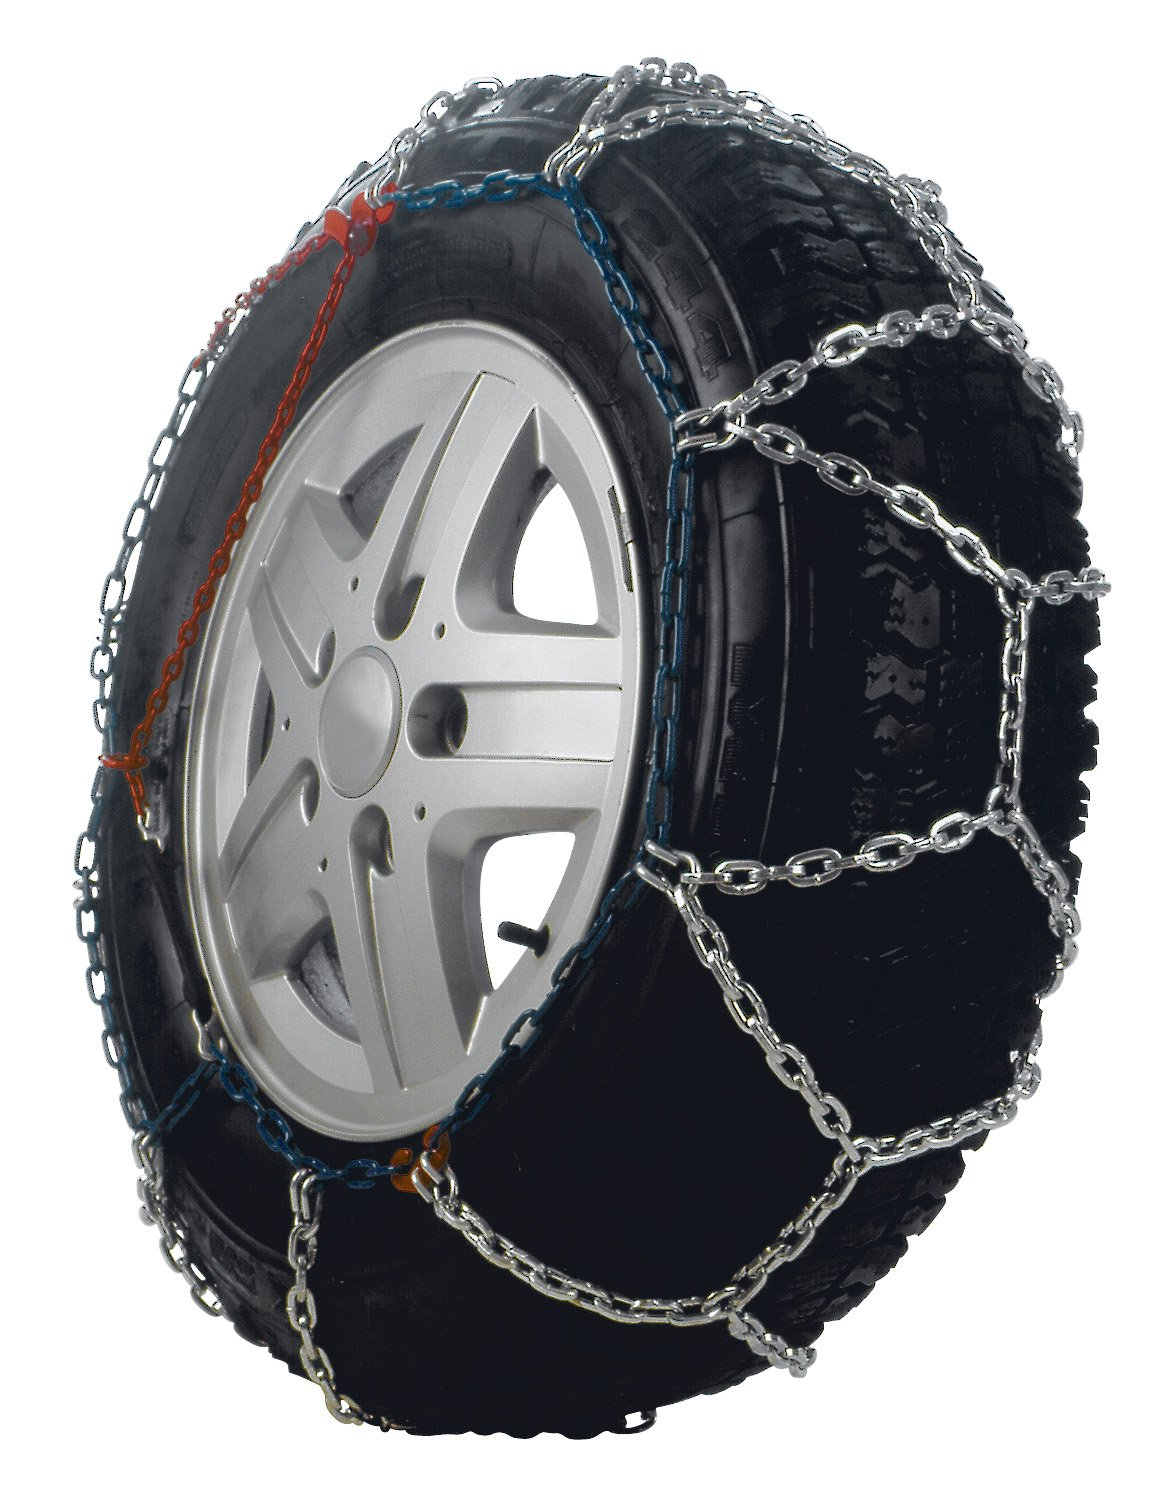 Bottari 68011''Master Heavy Duty 16mm Snow Chains for 4x4 MPV's and Van, TUV and ONORM Approved, Size 260